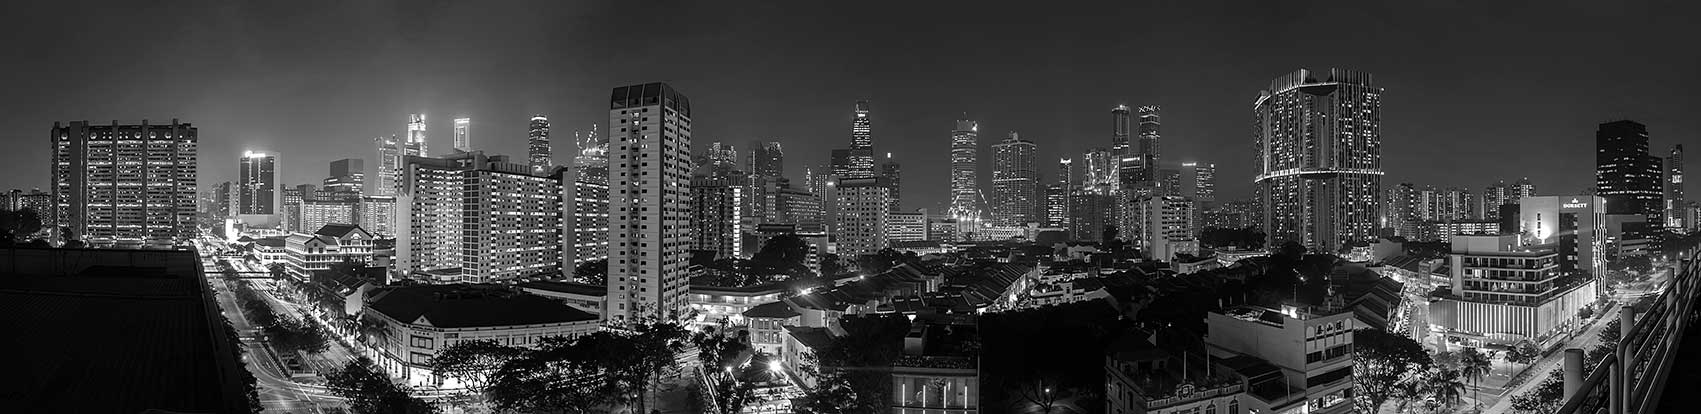 City Landscape, black and white, night photography, urban landscape